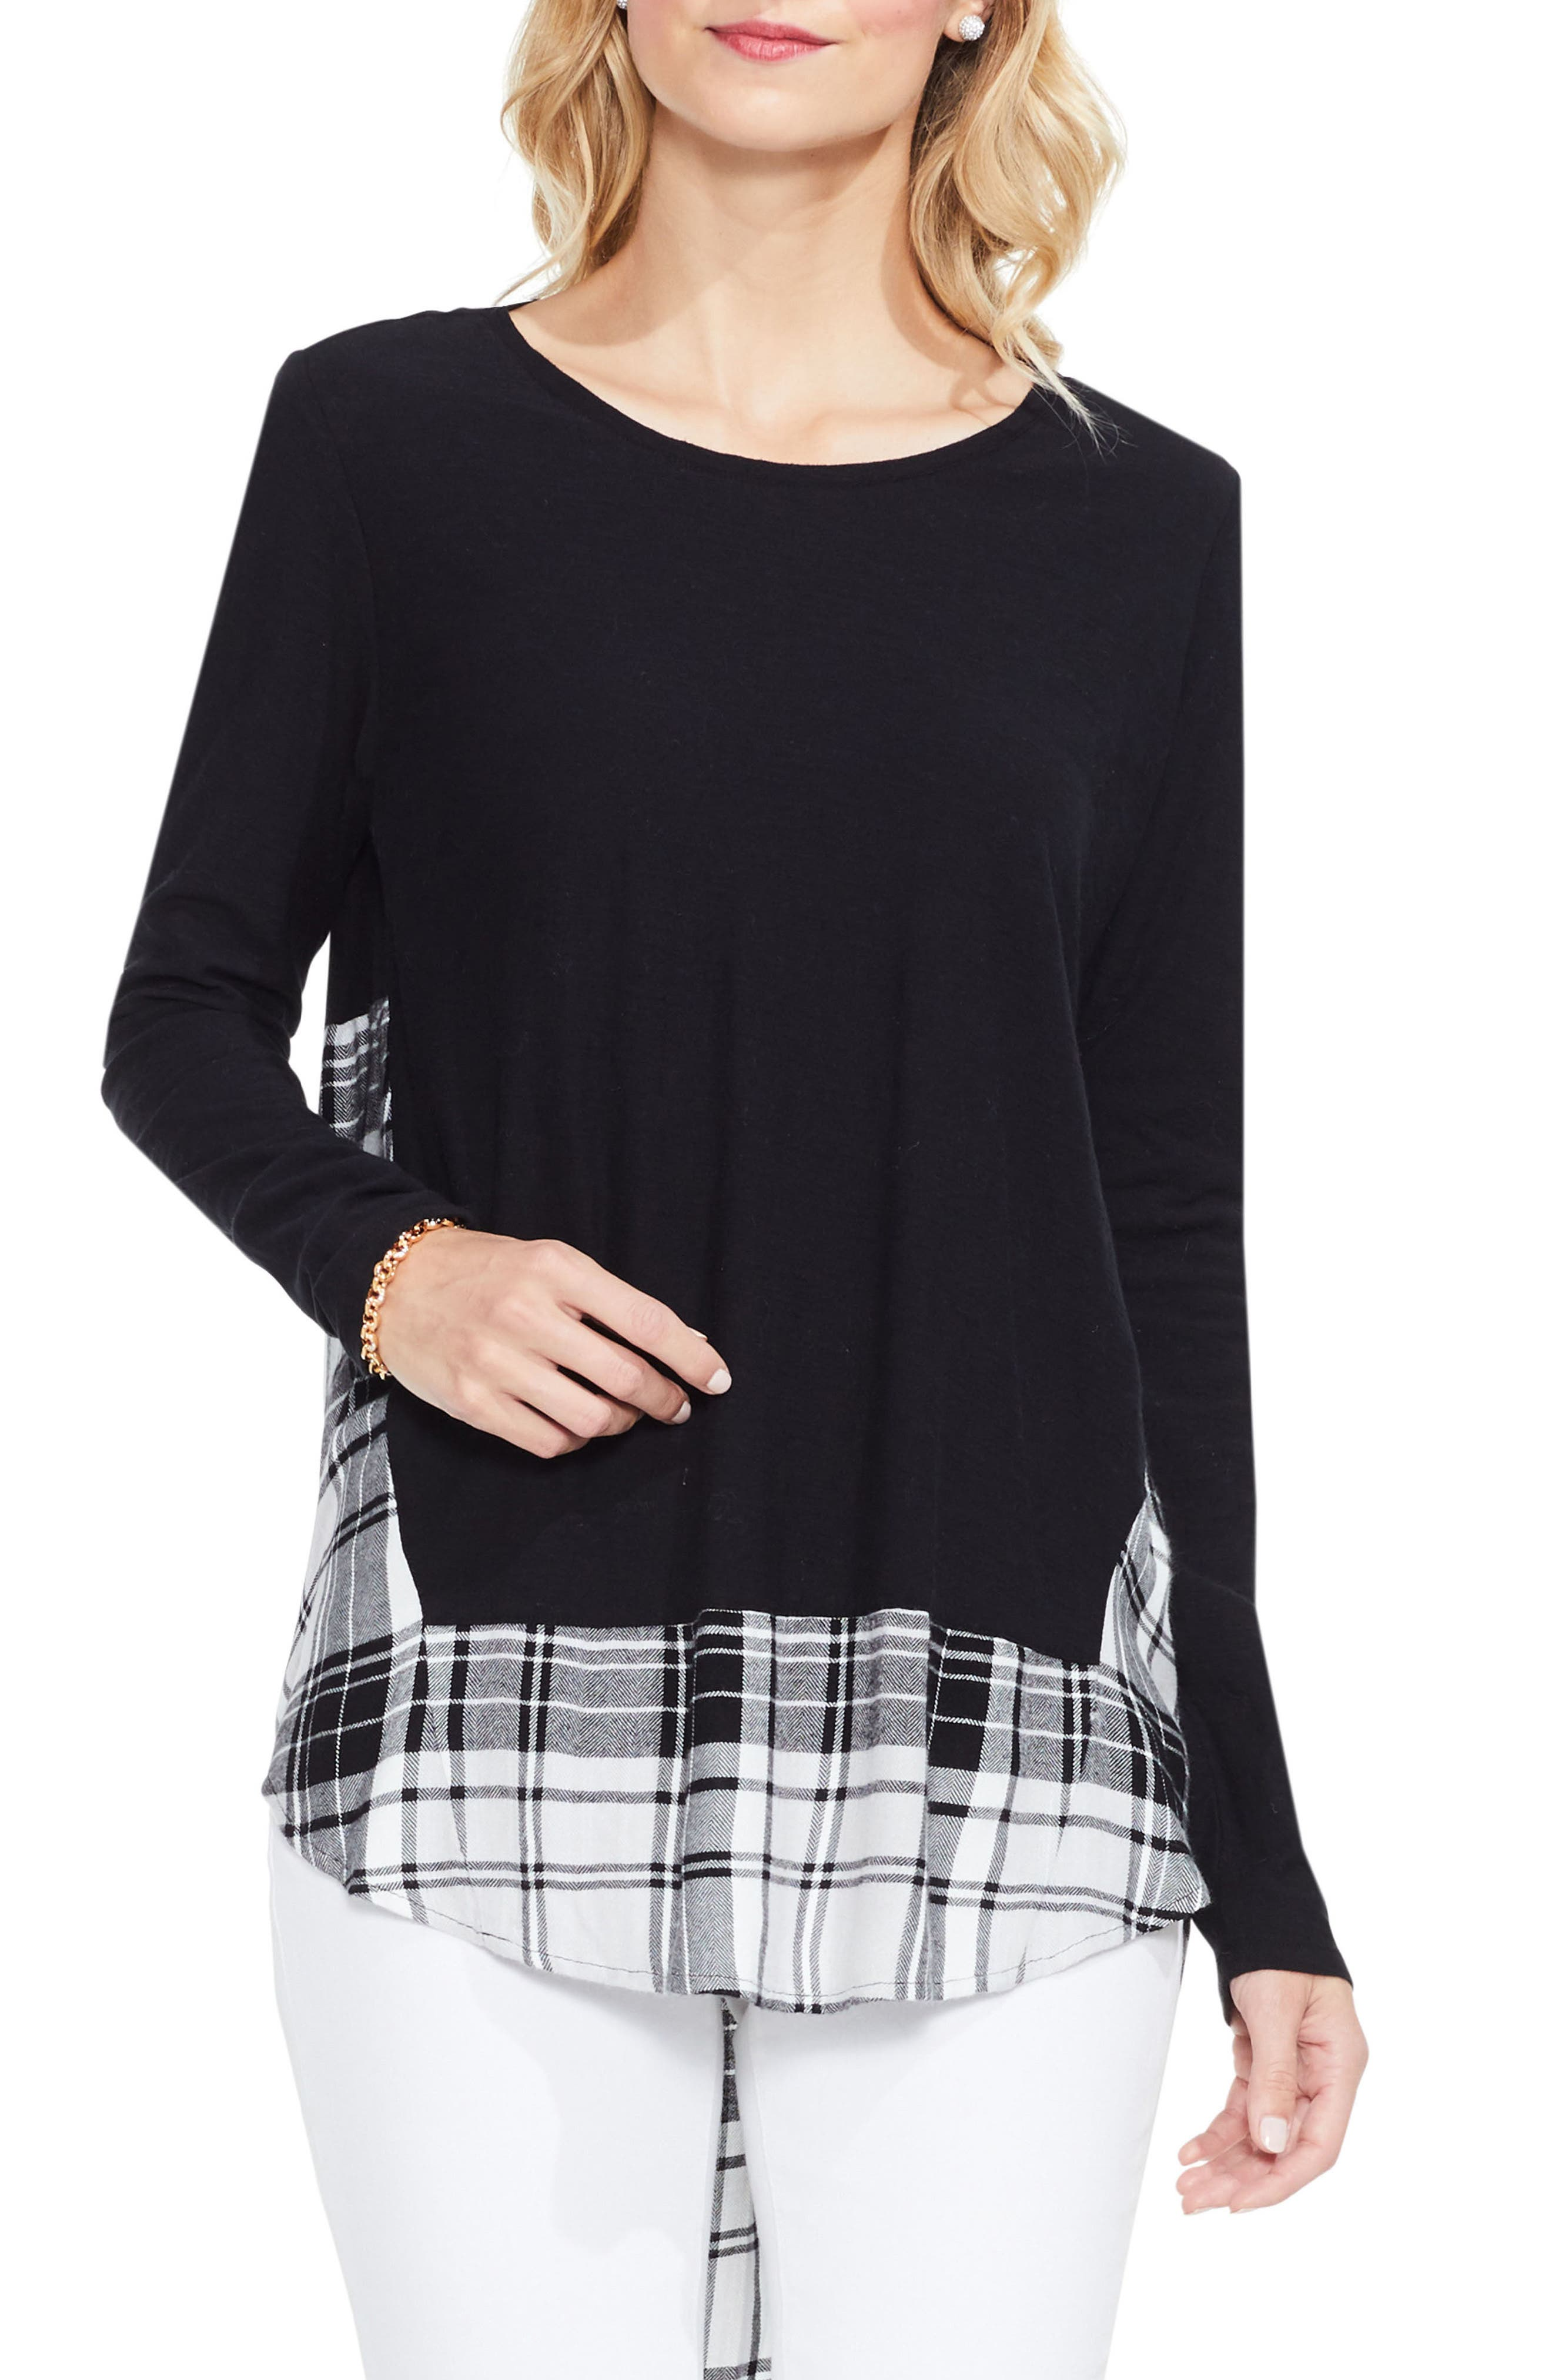 Main Image - Two by Vince Camuto Solid & Plaid Top